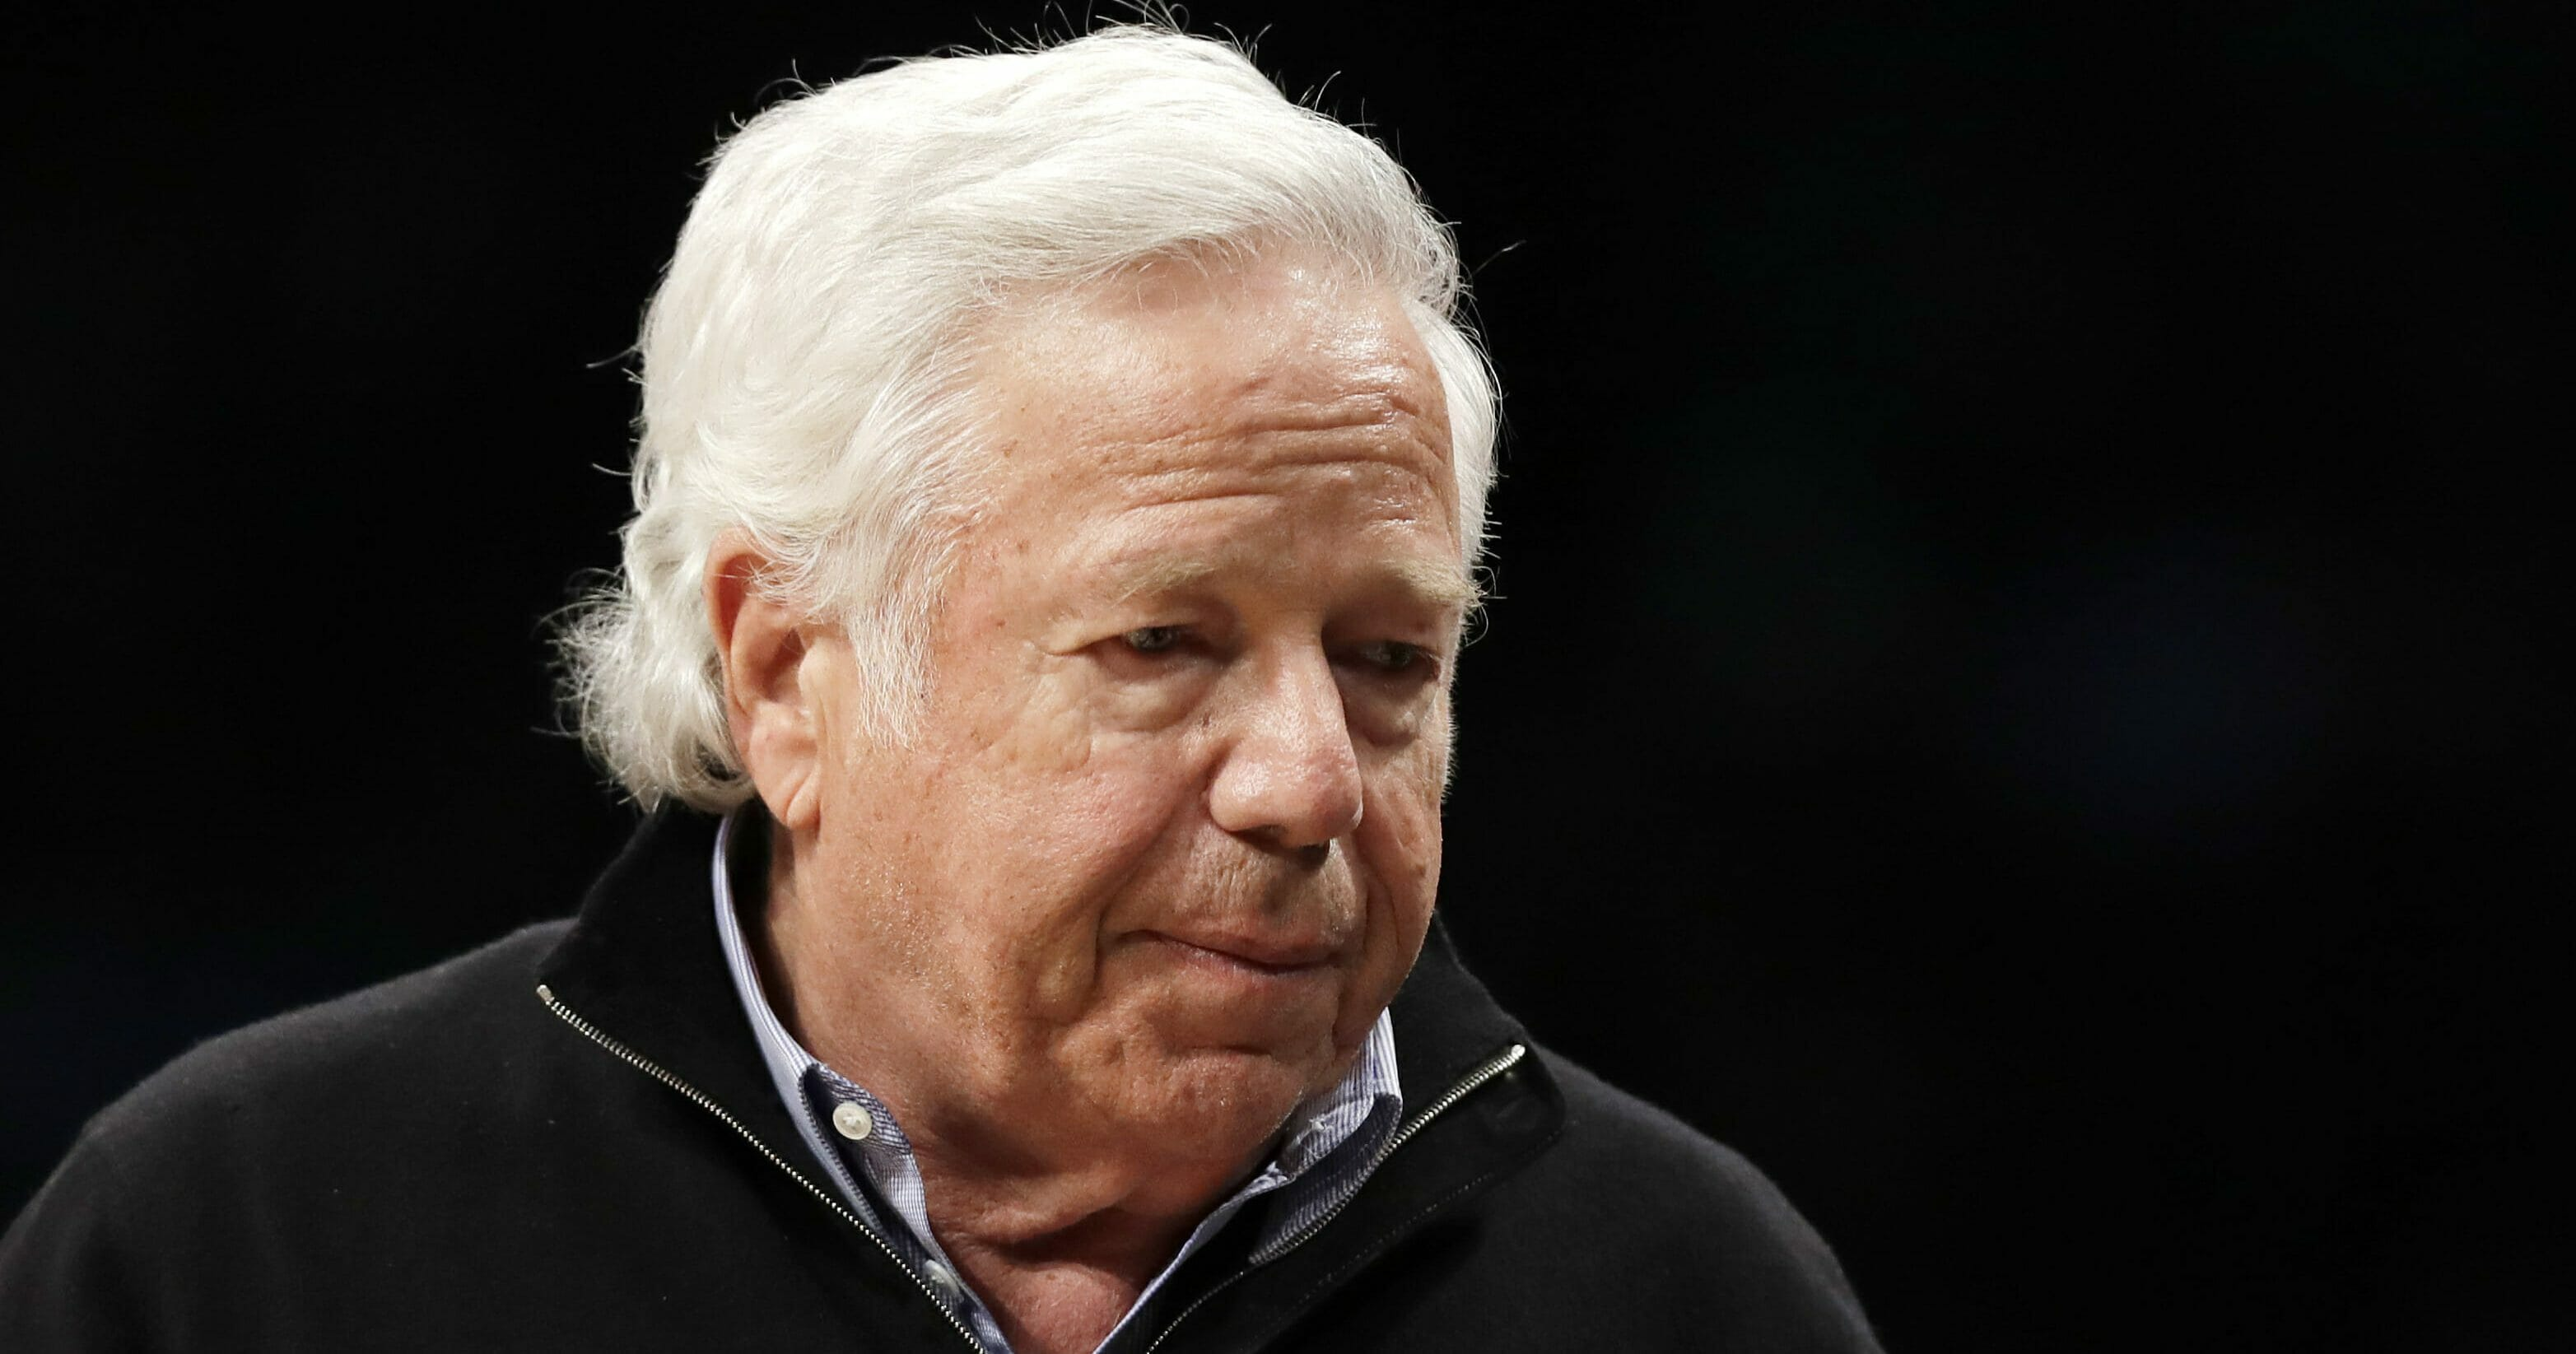 New England Patriots owner Robert Kraft leaves his seat during an NBA basketball game between the Brooklyn Nets and the Miami Heat on April 10, 2019, in New York.